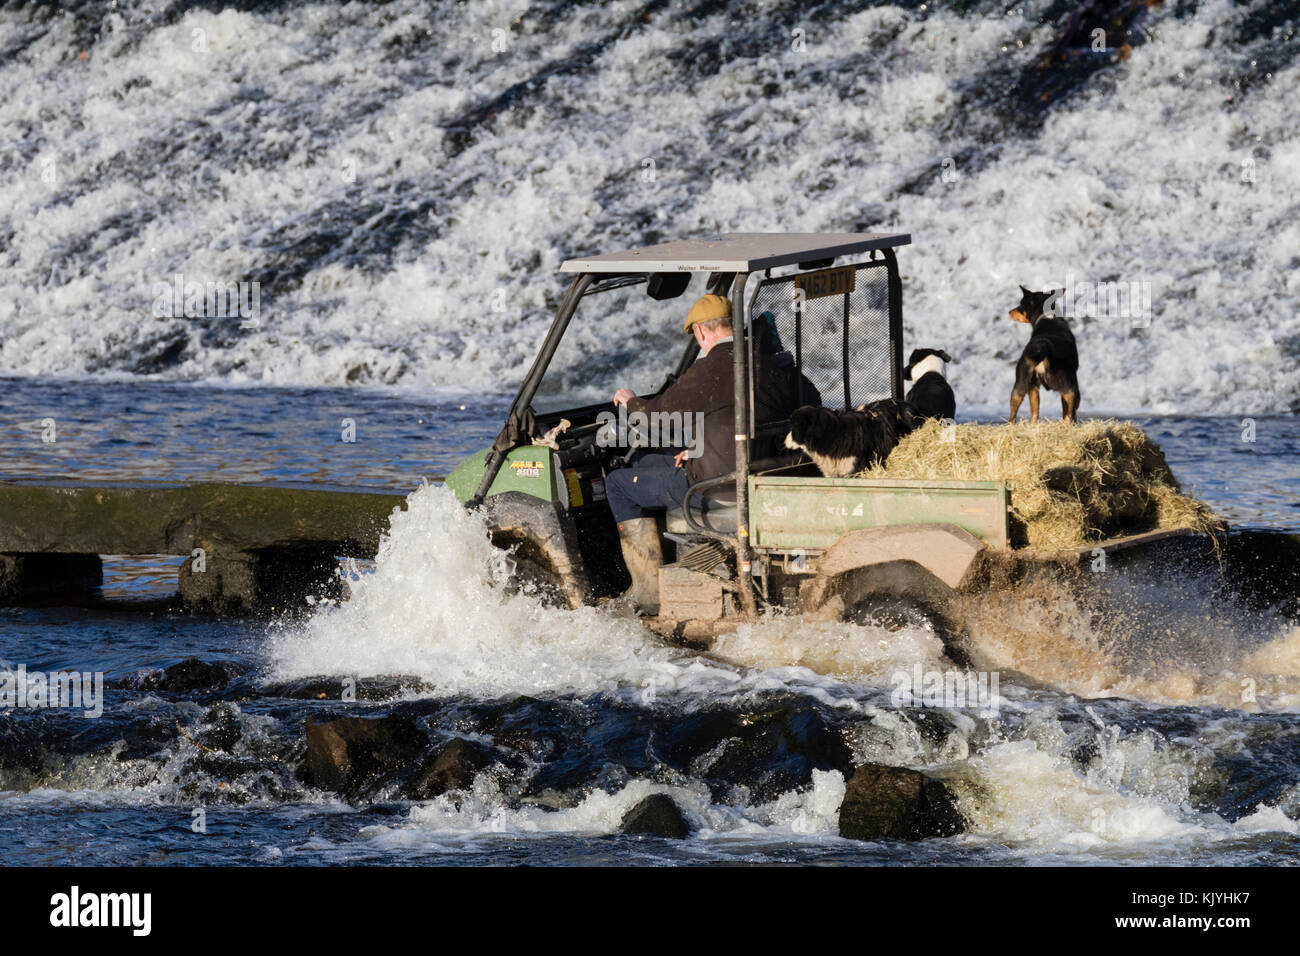 Kawasaki Mule 4010 4WD All terrain vehicle crosses the tidal ford at Lopwell Dam on the River Tavy in Devon, UK. - Stock Image